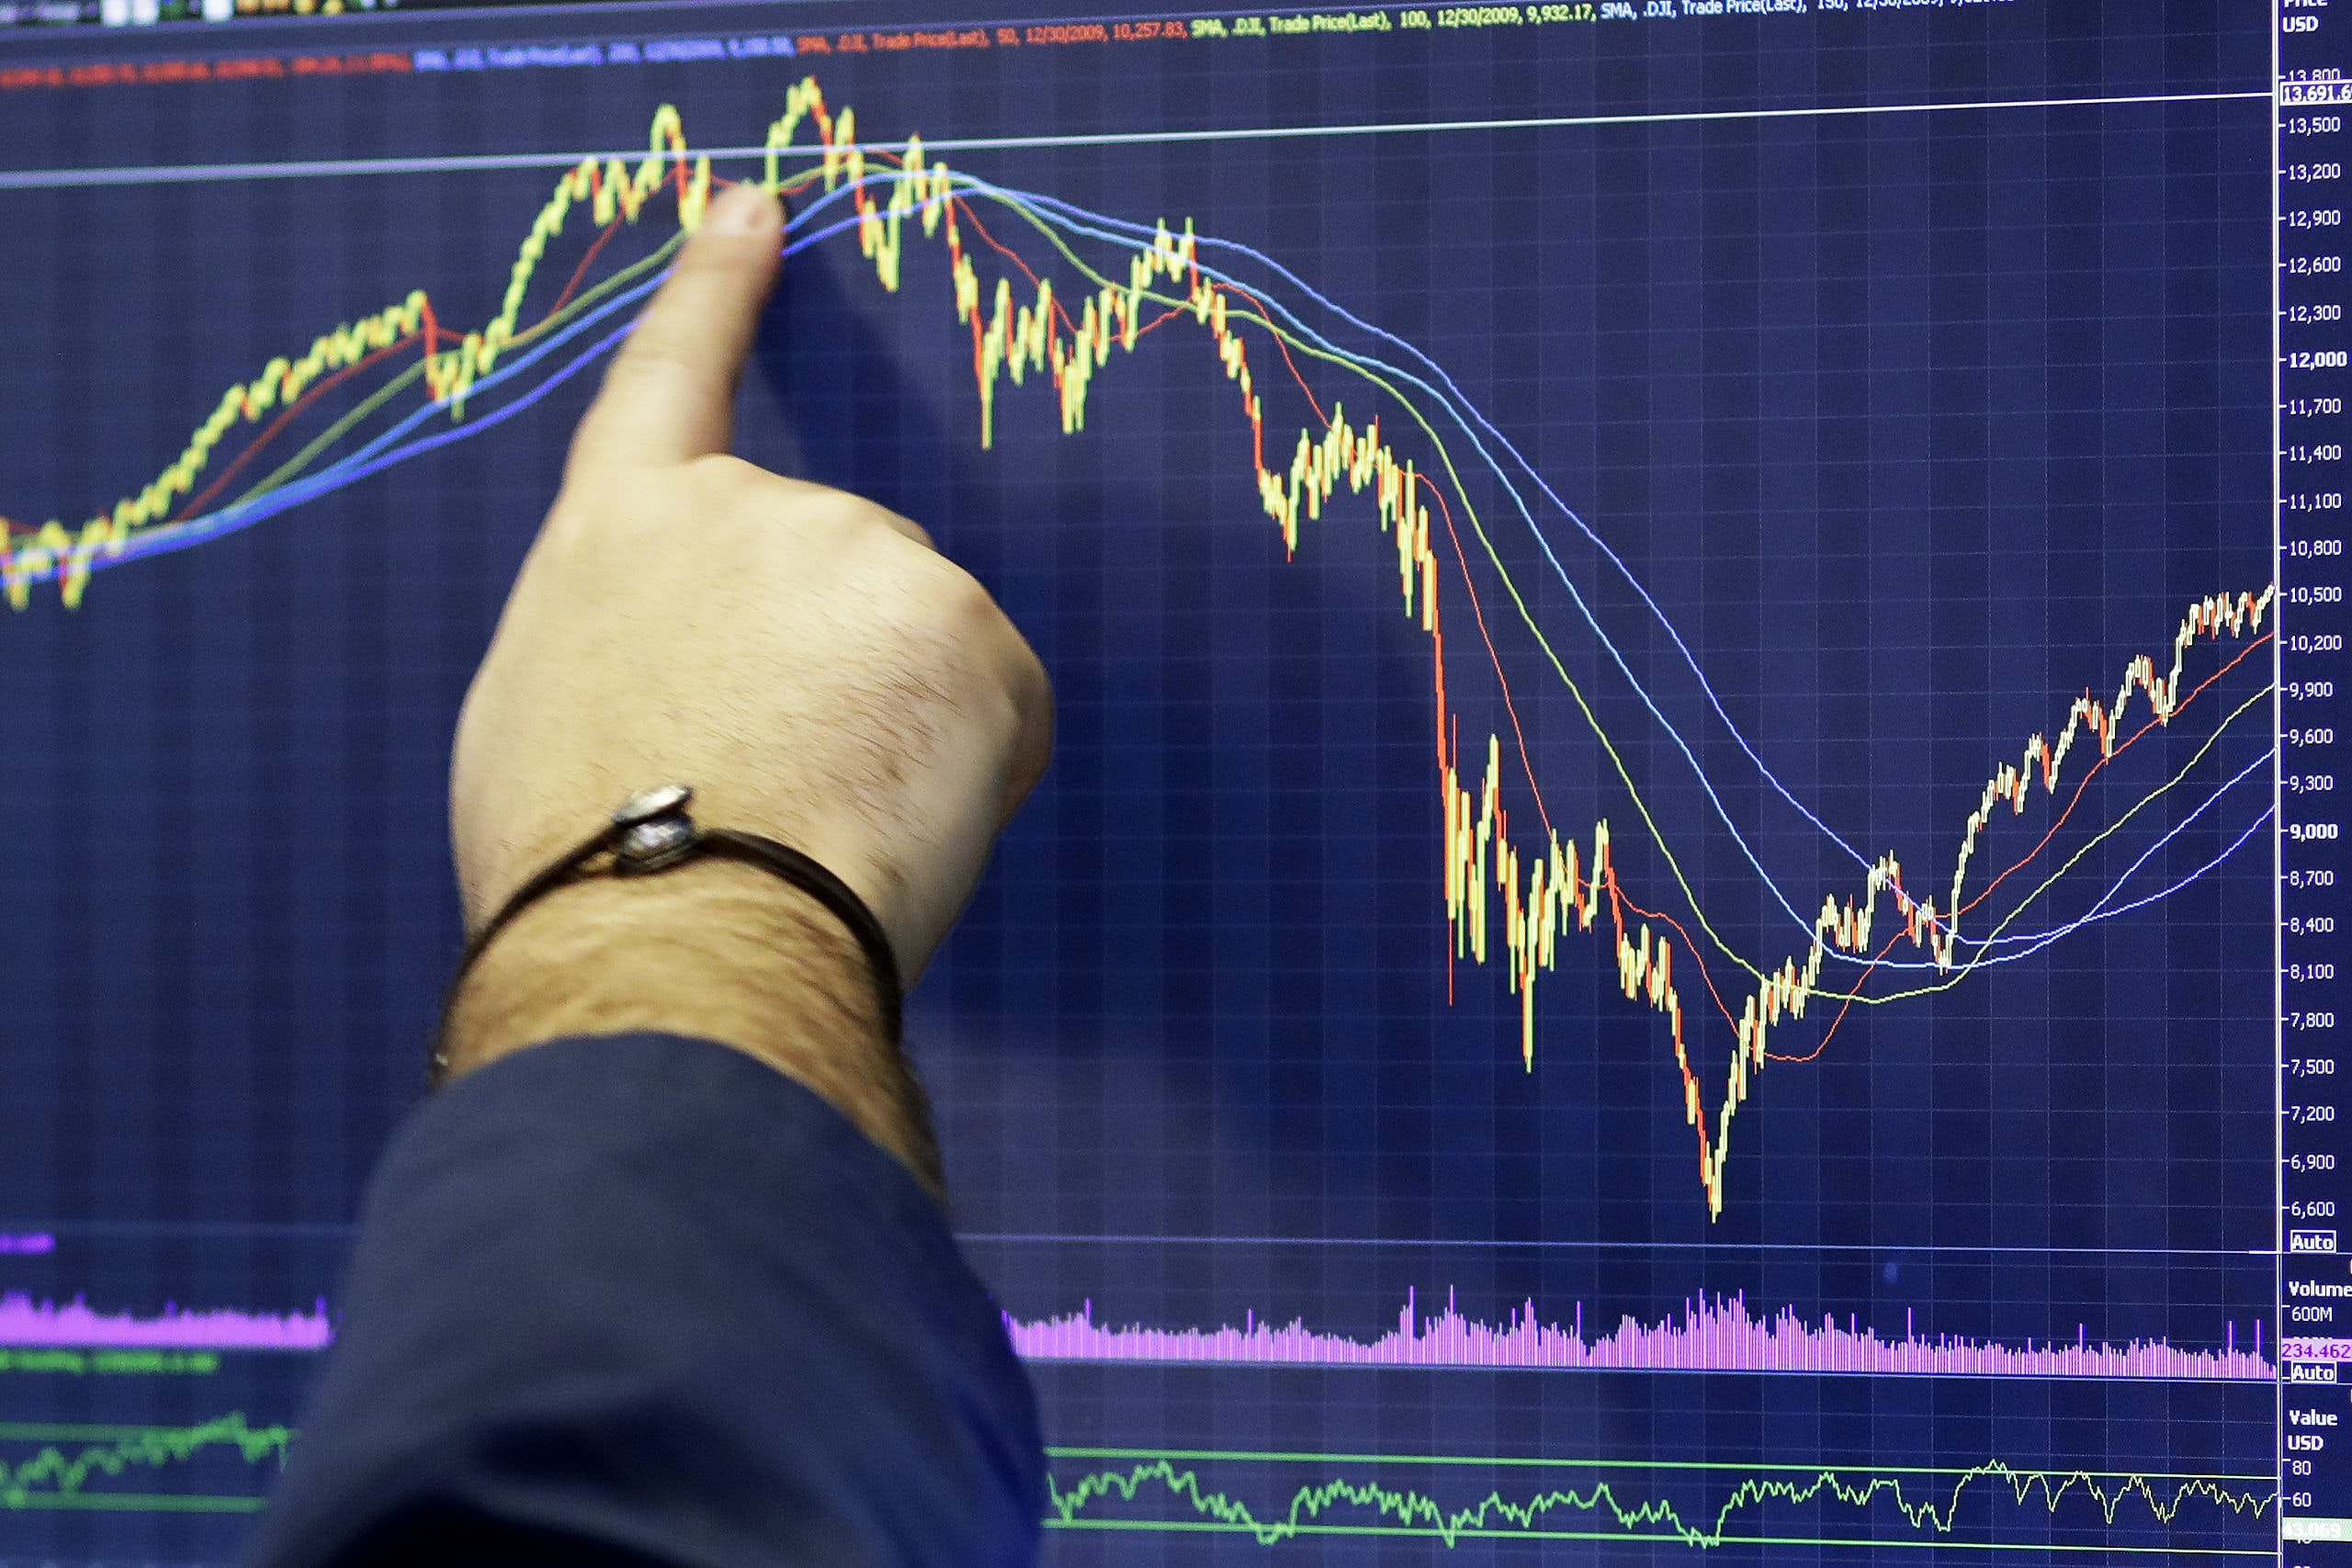 FILE- In this Nov. 19, 2018, file photo a trader follows a chart at the New York Stock Exchange. For the second time this year, stocks have gone into what's known on Wall Street as a correction, a drop of 10 percent or more from a recent high. (AP Photo/Mark Lennihan, File)